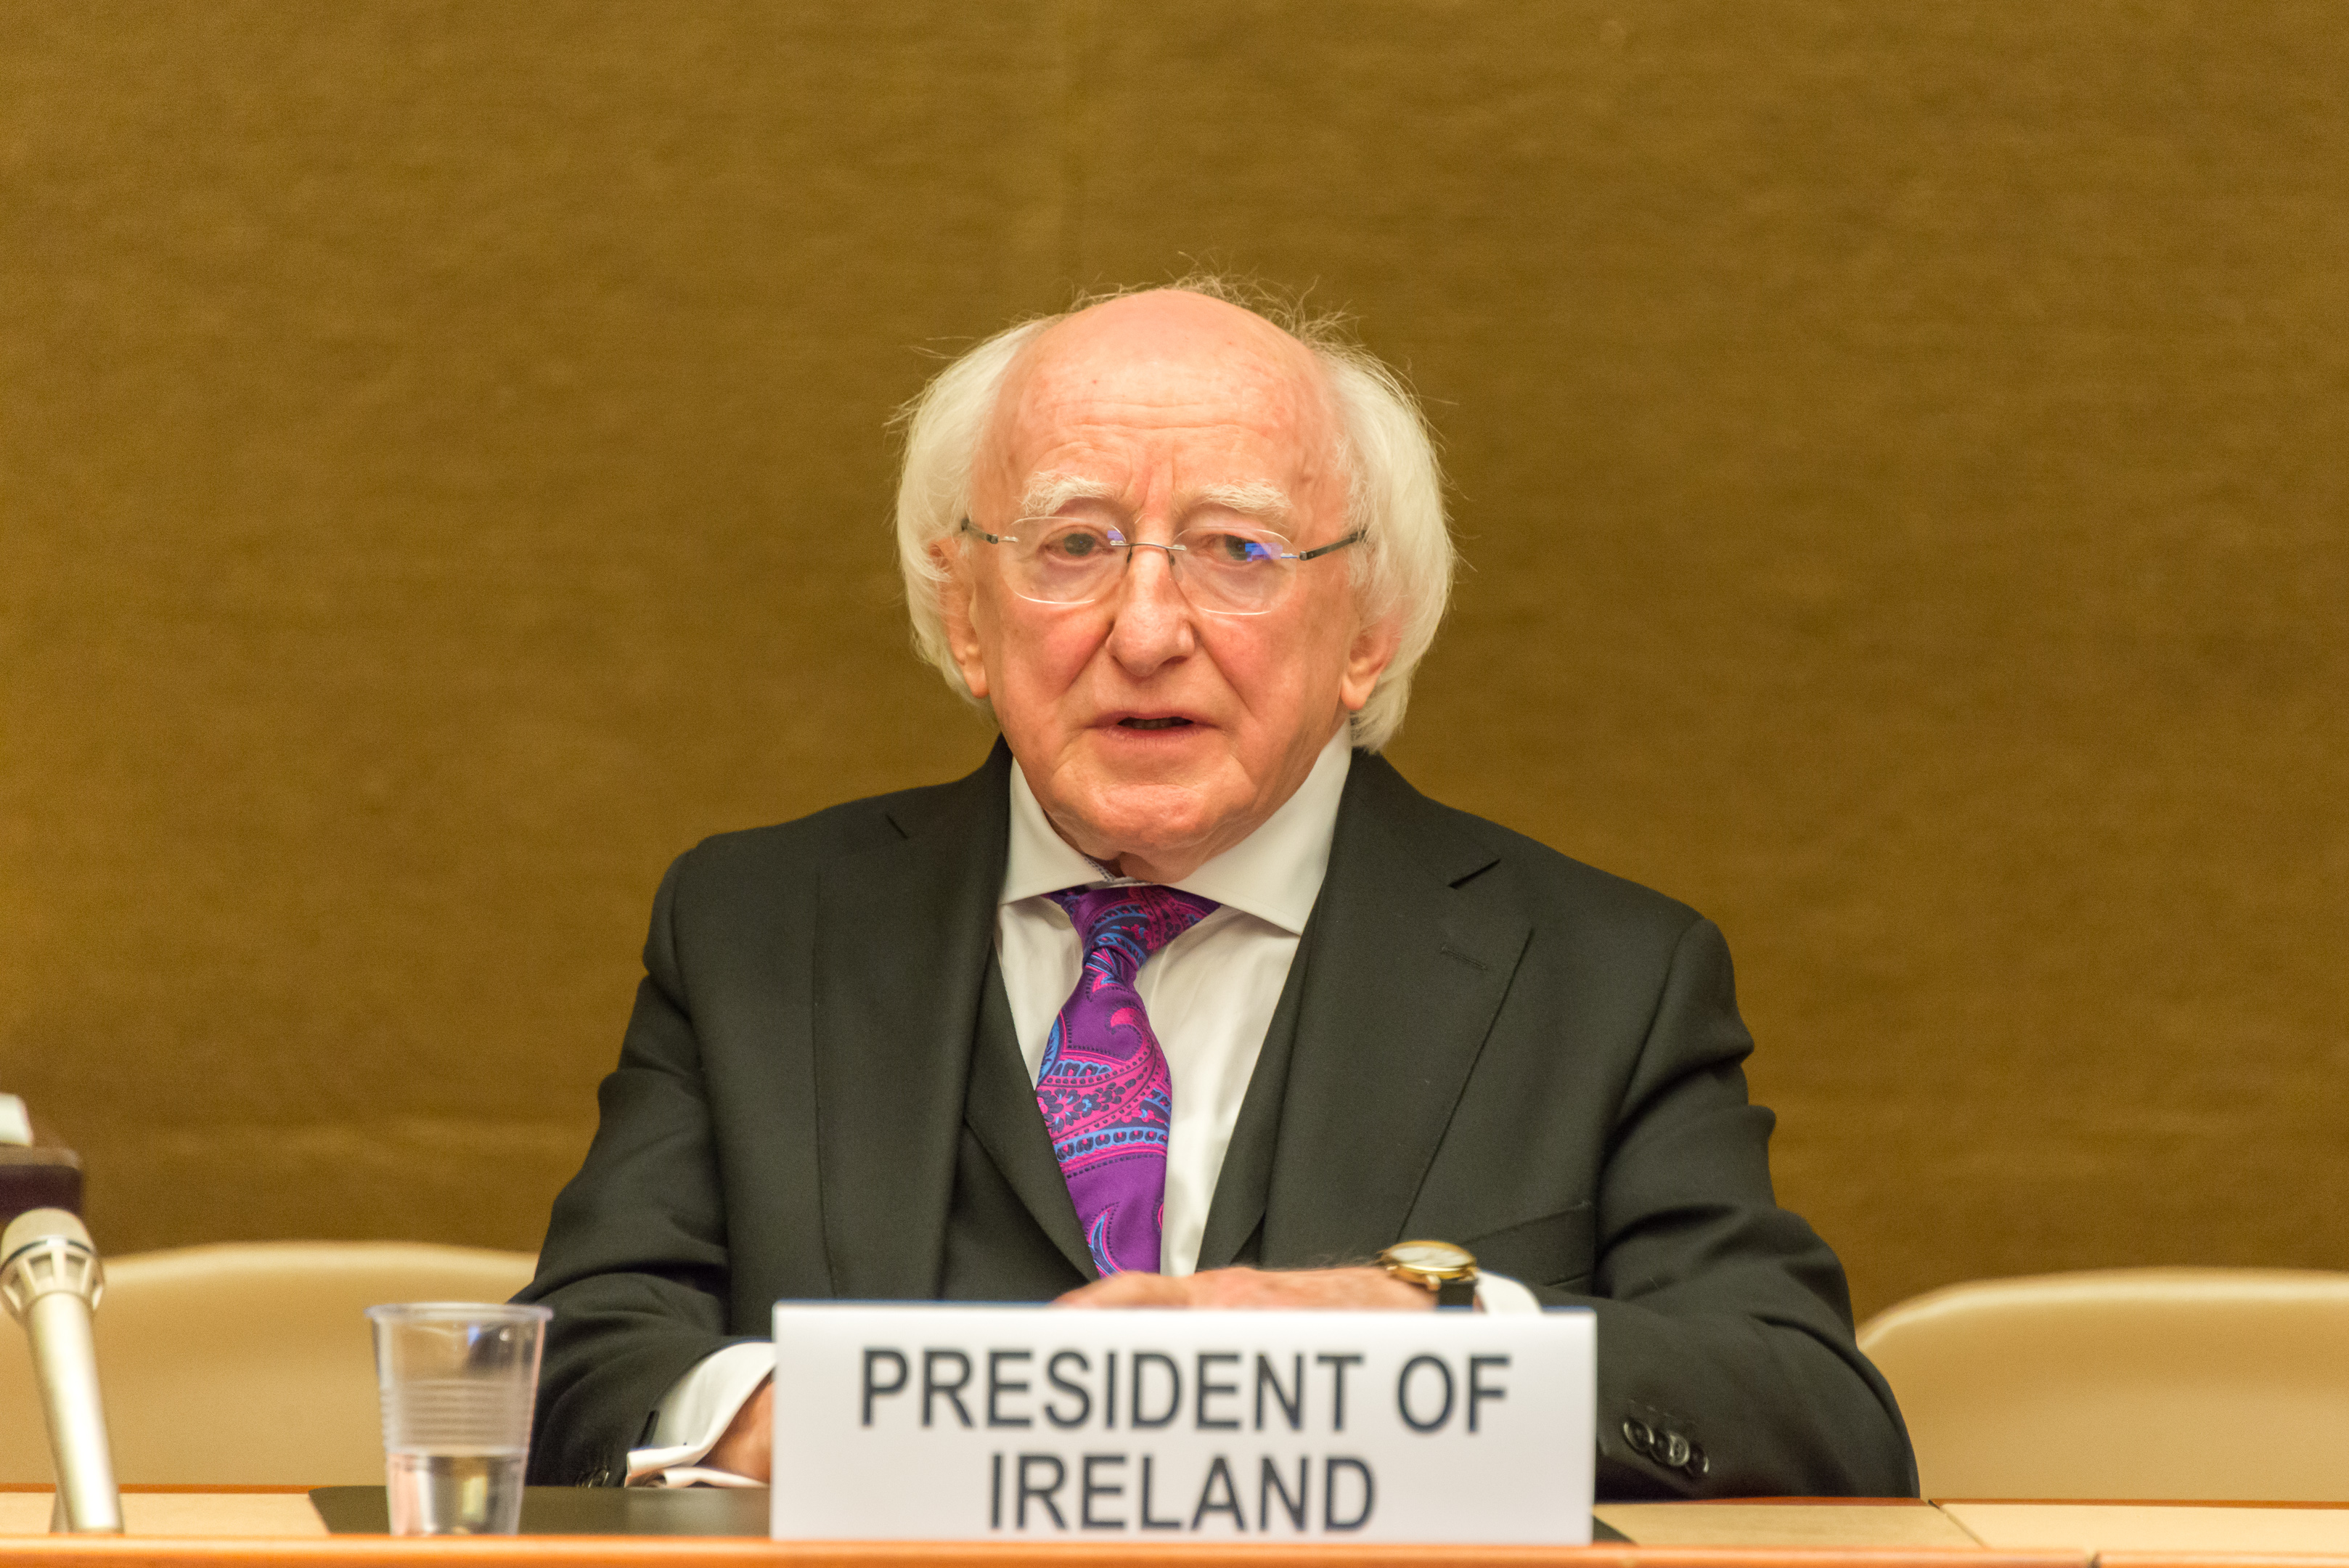 President Michael Higgins of Ireland (photo credit: UNCTAD/flickr)